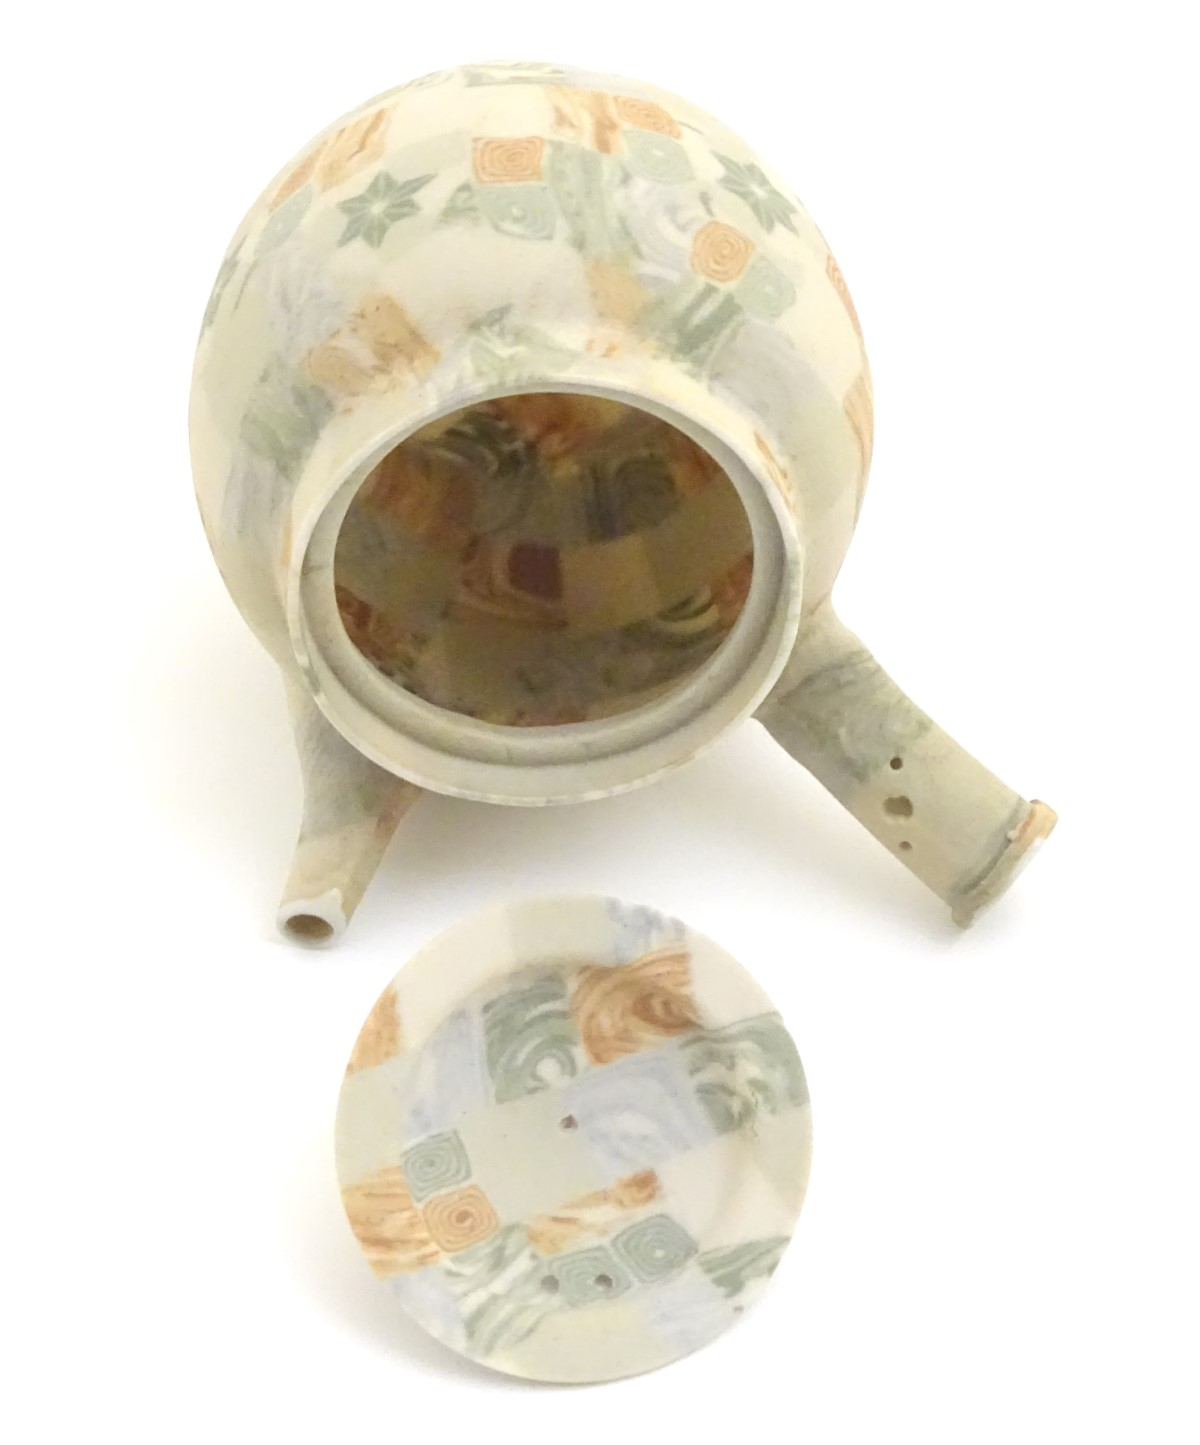 Lot 34 - A Japanese banko nerikomi / neriage / agateware teapot with spout and pouring handle,